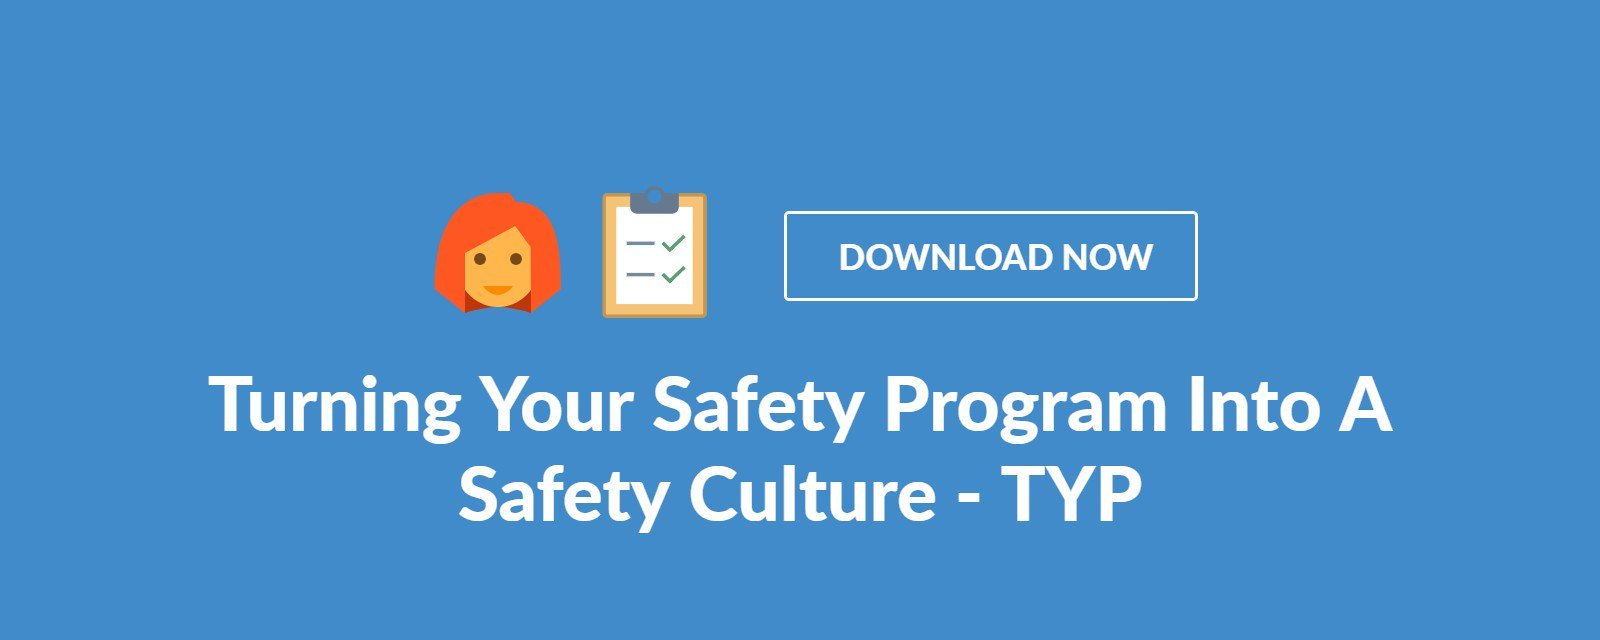 Turning Your Safety Program Into A Safety Culture